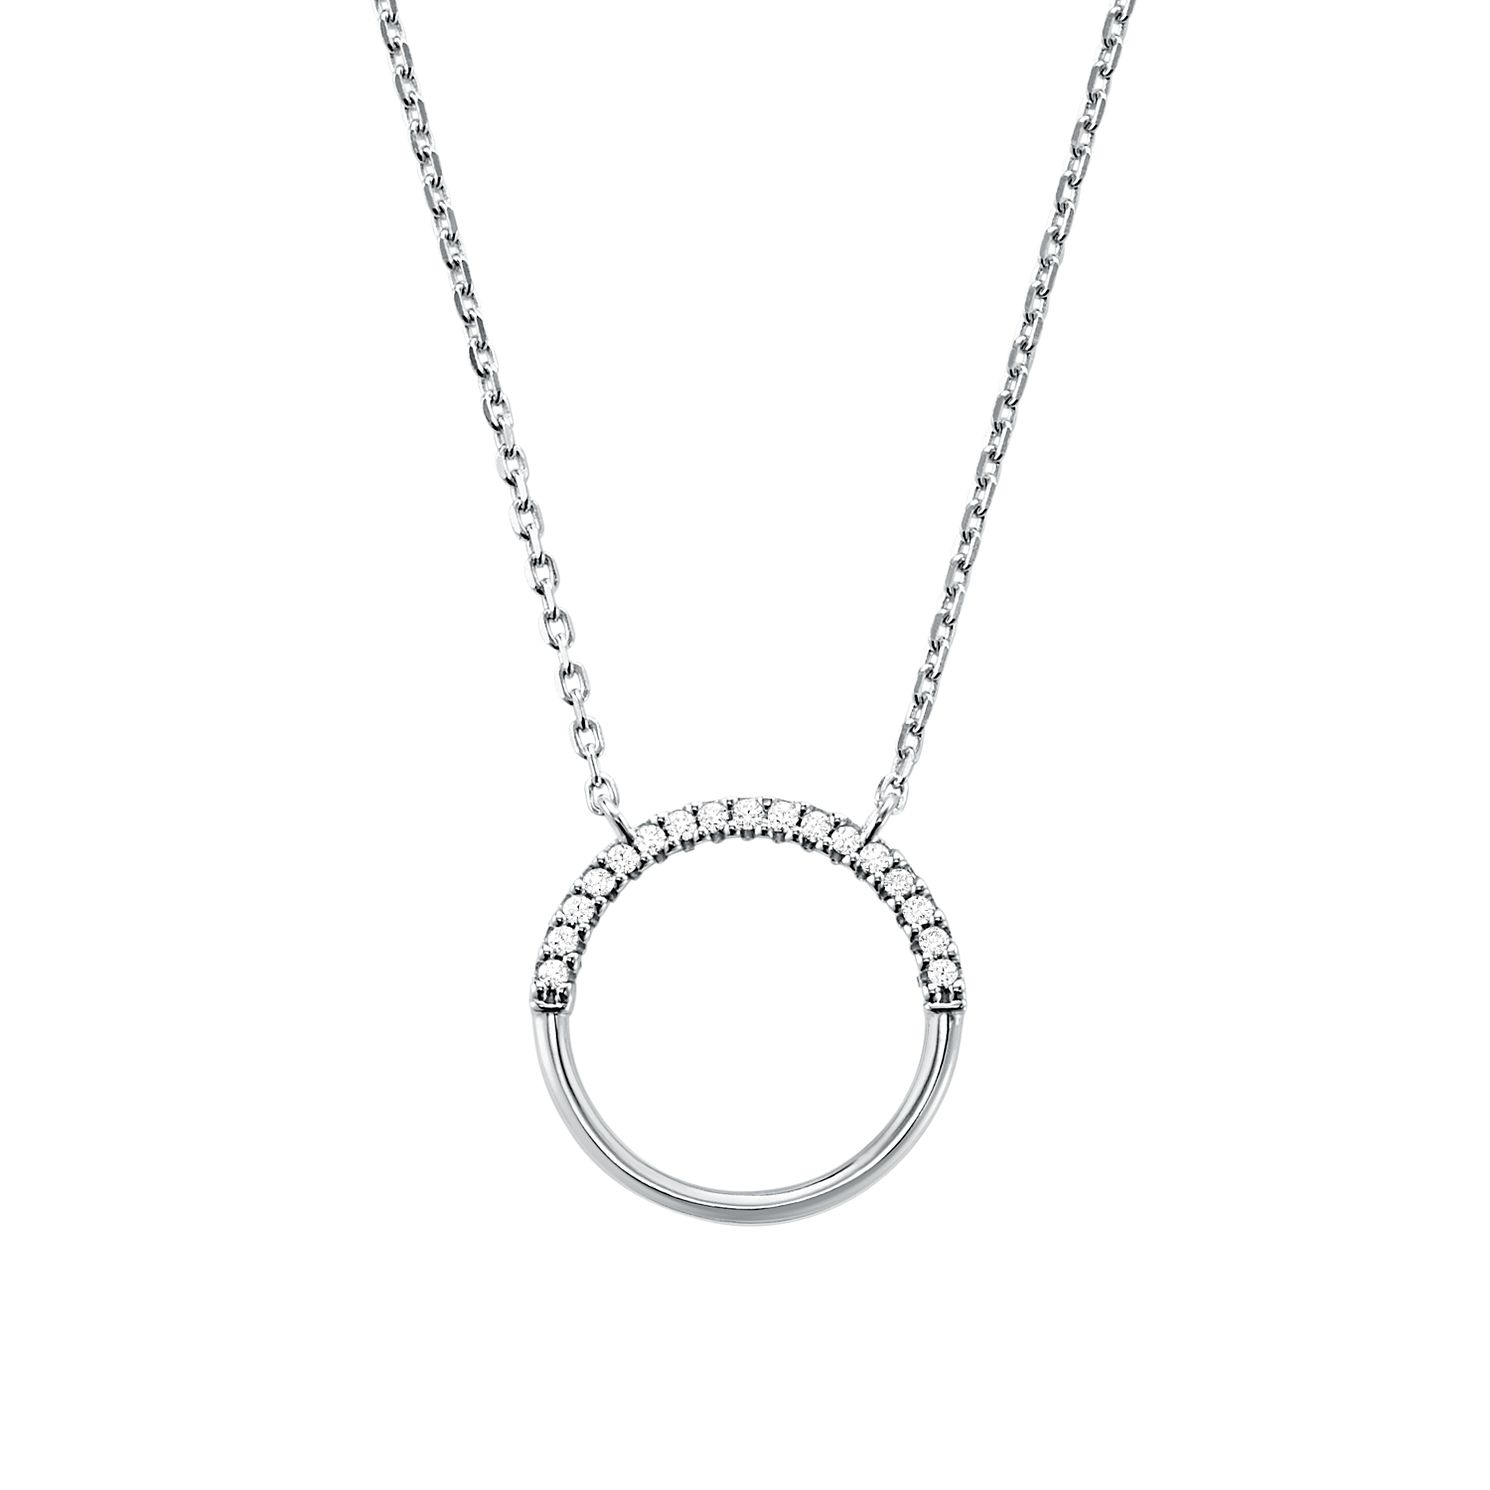 Michael Kors Sterling Silver Custom Kors Circle Pendant - Product number 9800891